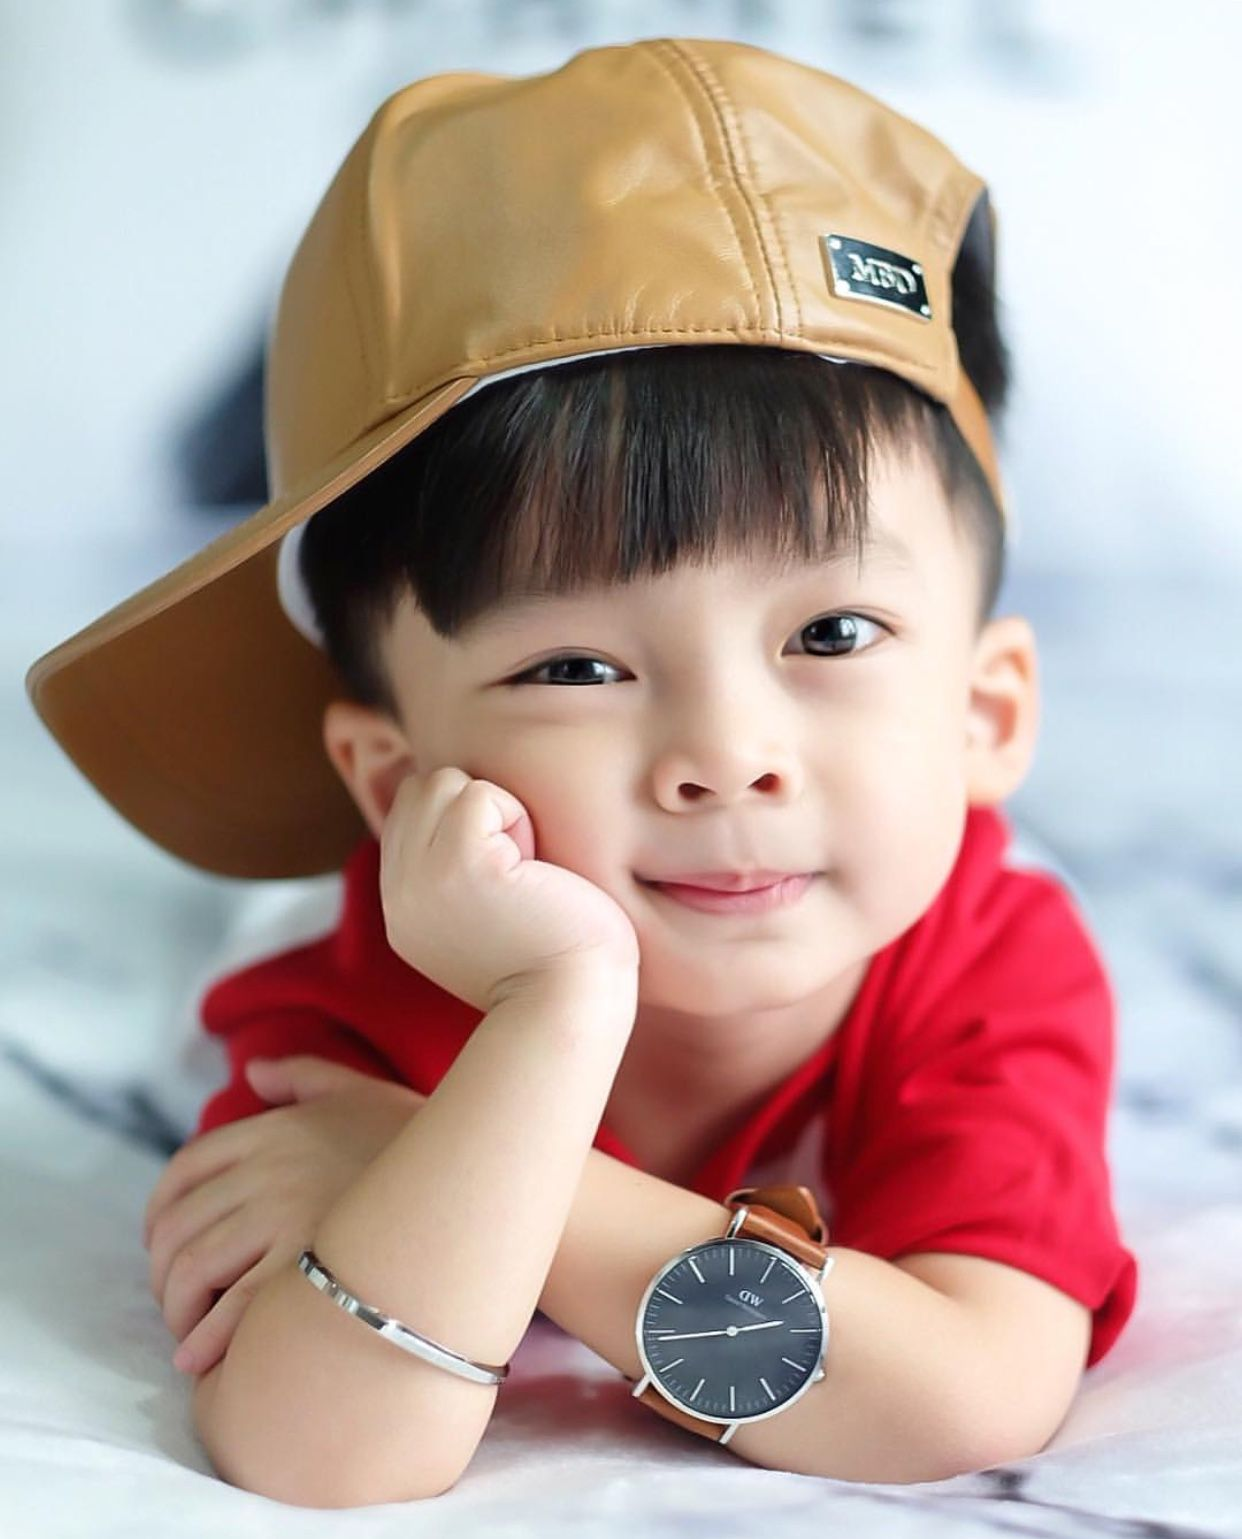 Pin By Rachel On I Kid You Not Kids Fashion Photography Kids Fashion Boy Cute Baby Girl Images